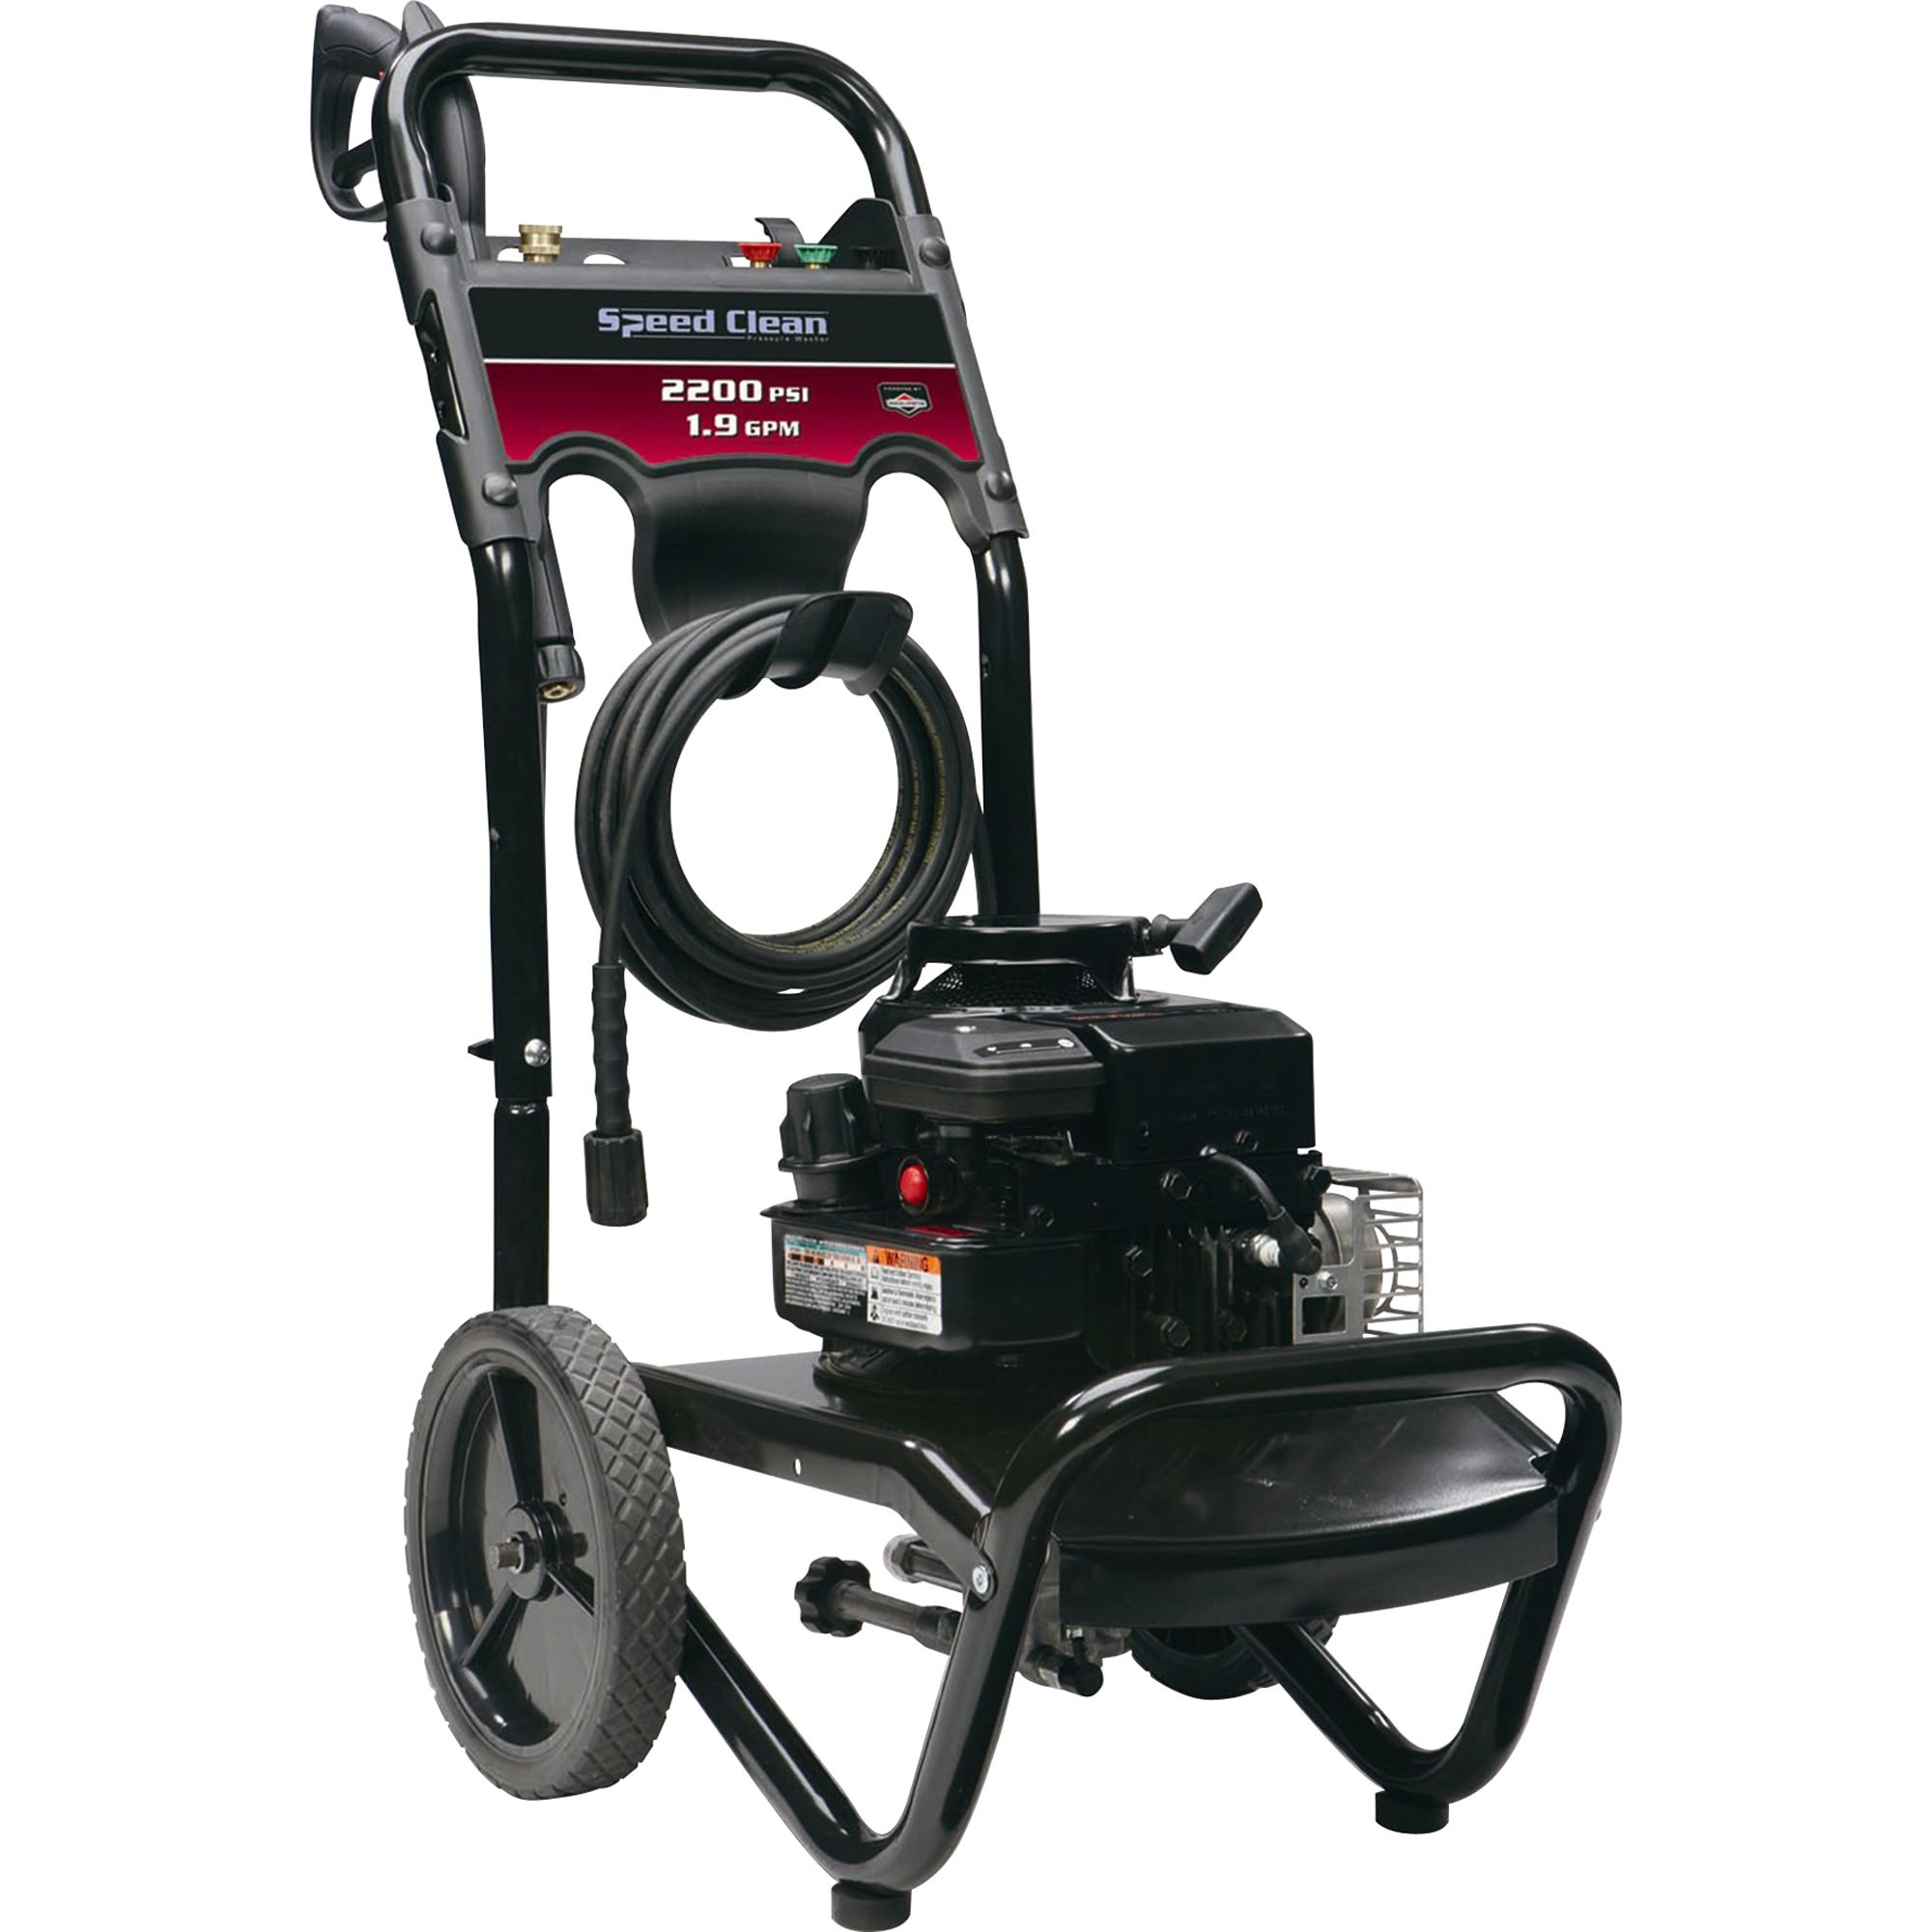 Speed Clean 20460 2200 Psi 1 9 Gpm Pressure Washer Ca